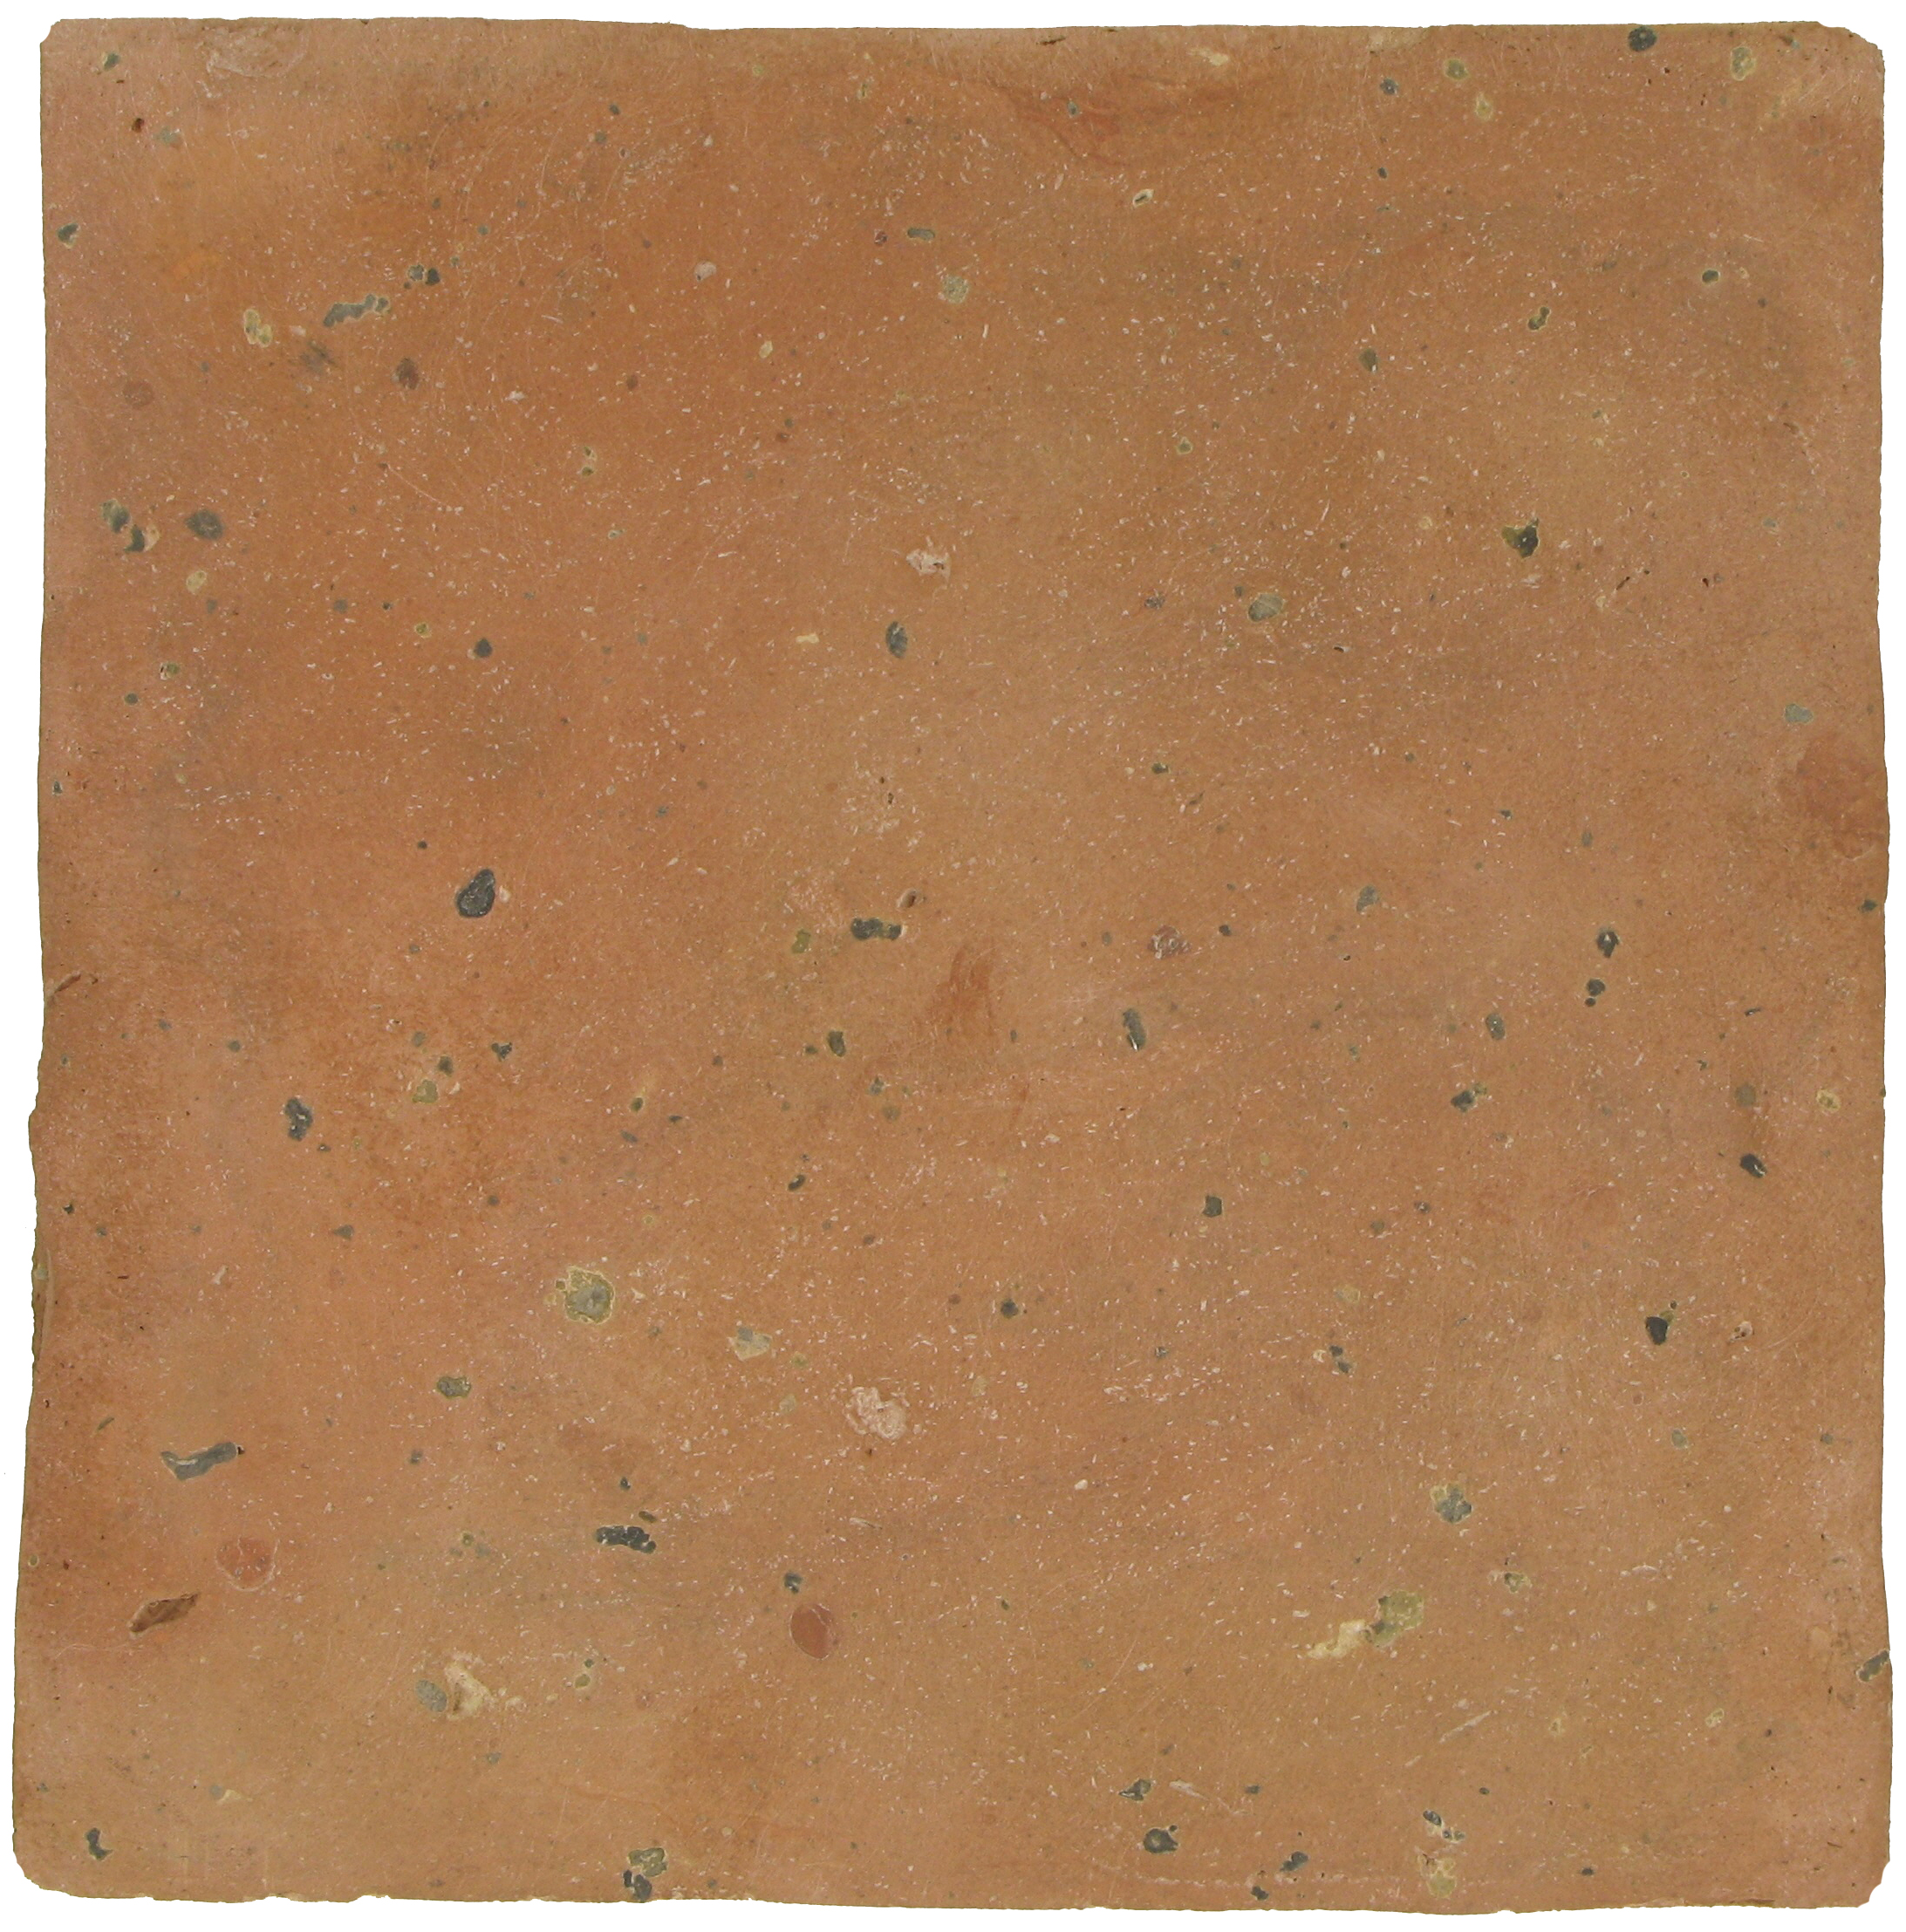 TOSCANA Terracotta & Marble  Terracotta: Cotto LUCCA  Color/Finish: Old Patina NATURAL (TCLN)